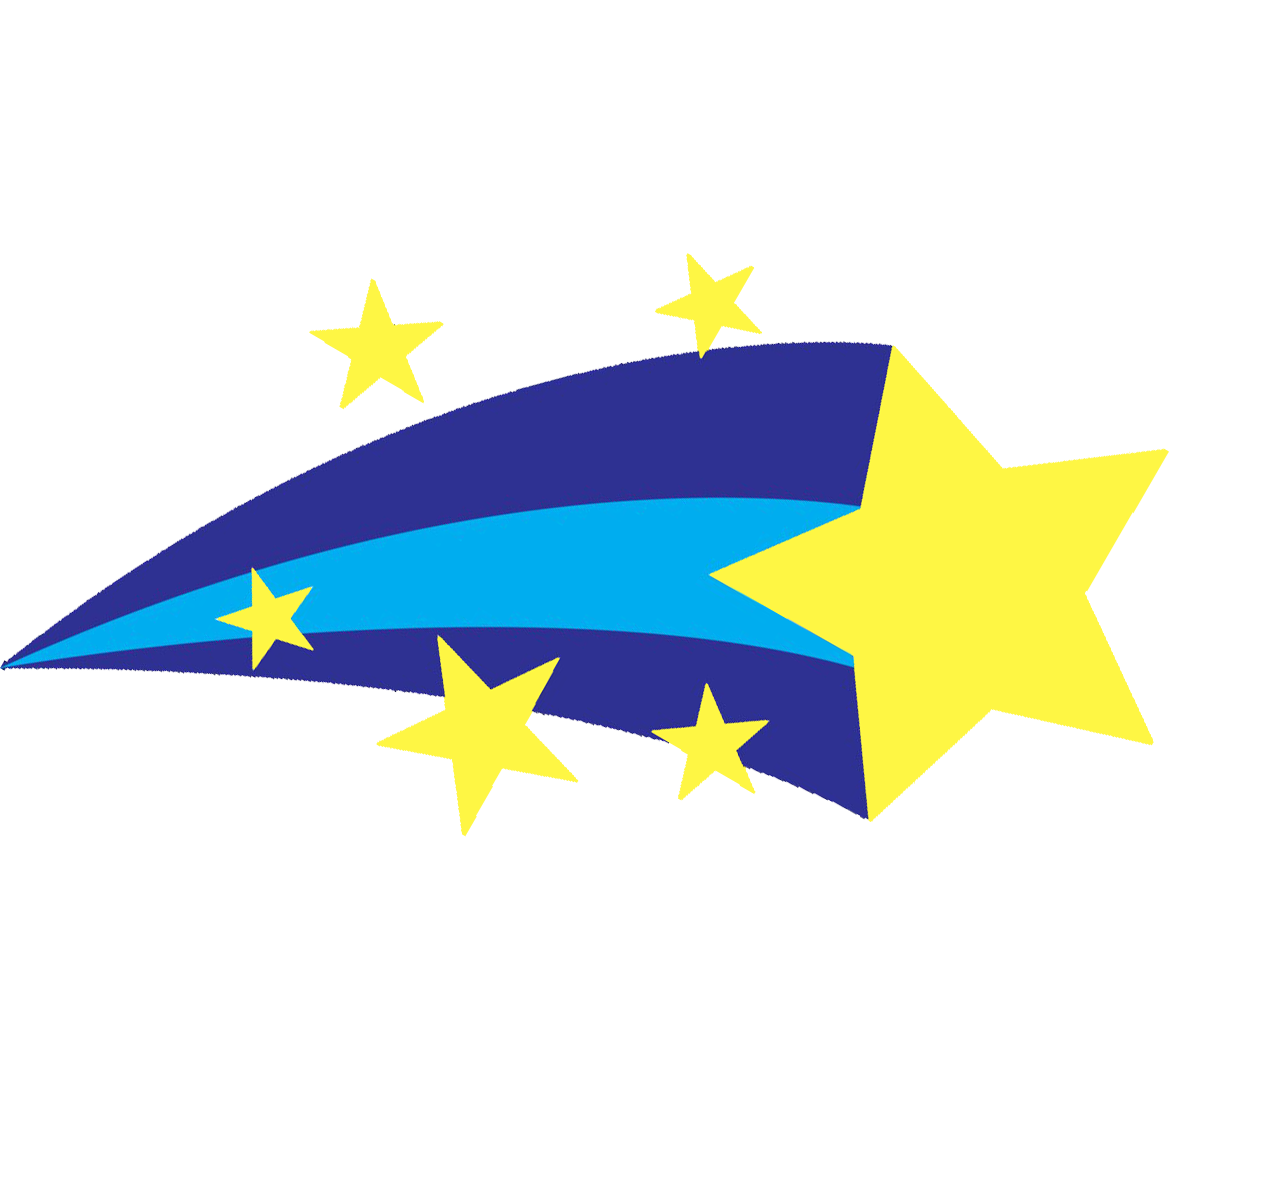 Shooting star images clip art